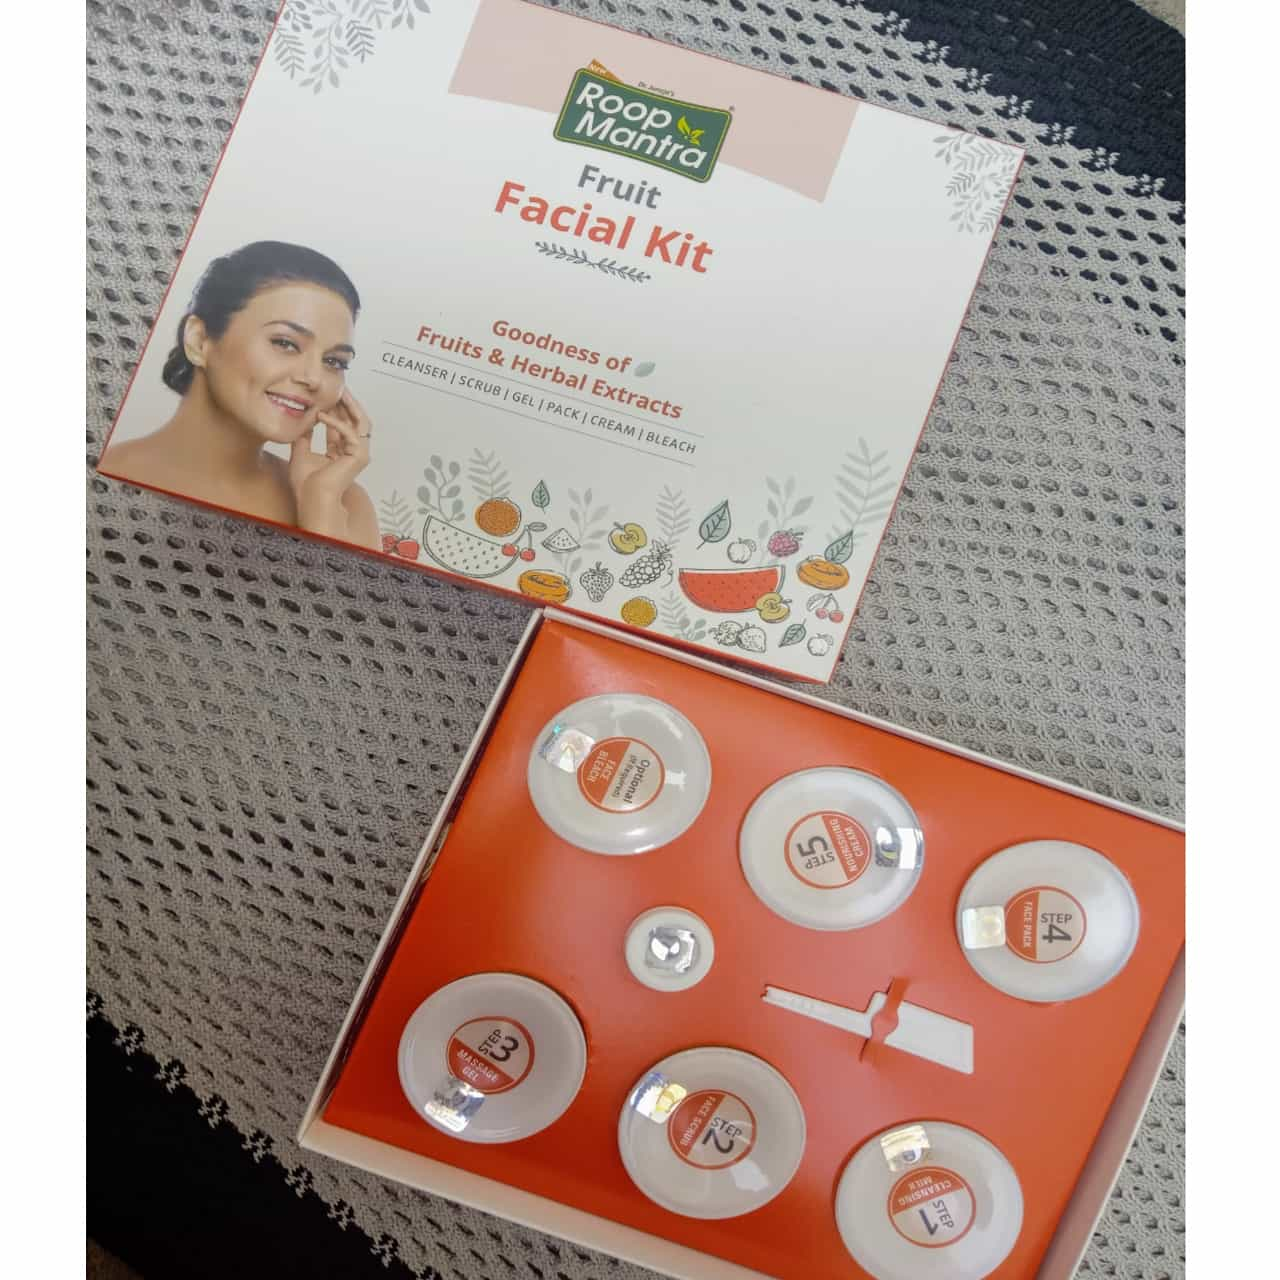 Roop Mantra Fruit Facial Kit-Your own home salon-By sonam22-2